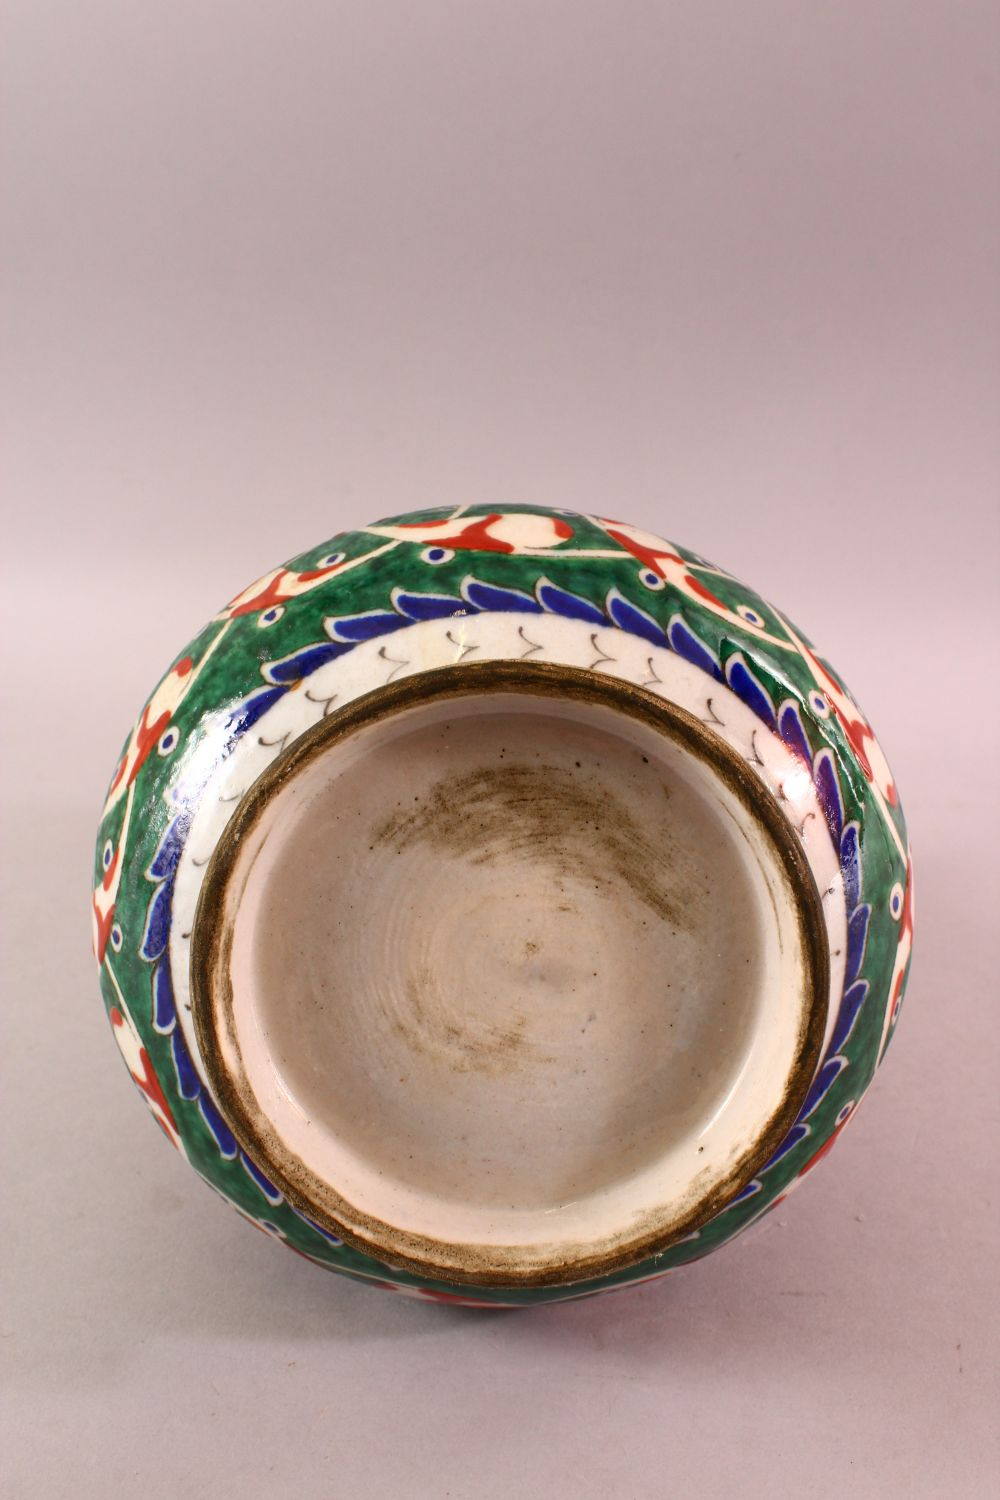 A TURKISH OTTOMAN 18TH CENTURY IZNIK VASE, with green and red motif decorations, 26cm - Image 4 of 4